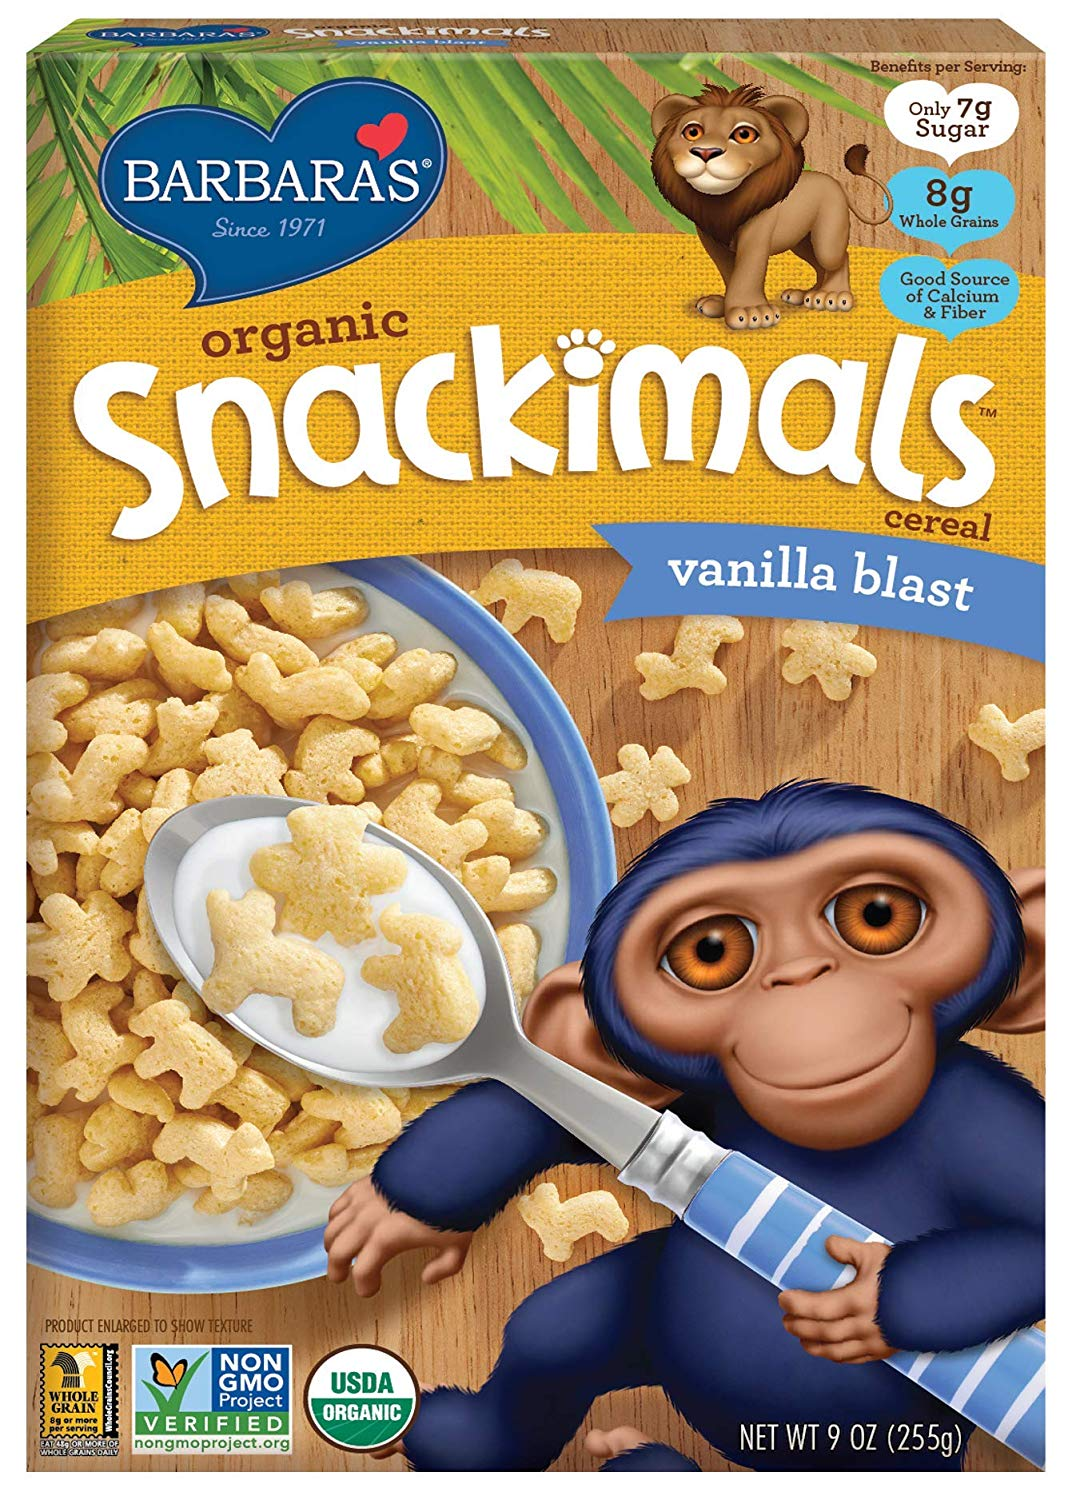 Snackimals Vanilla Blast Cereal. All kids will love munching on this lightly sweetened, USDA Organic and Non-GMO Project Verified crunchy cereal with fun animal shapes, including lions, elephants and panda bears! Perfect for kids' stockings to enjoy immediately!